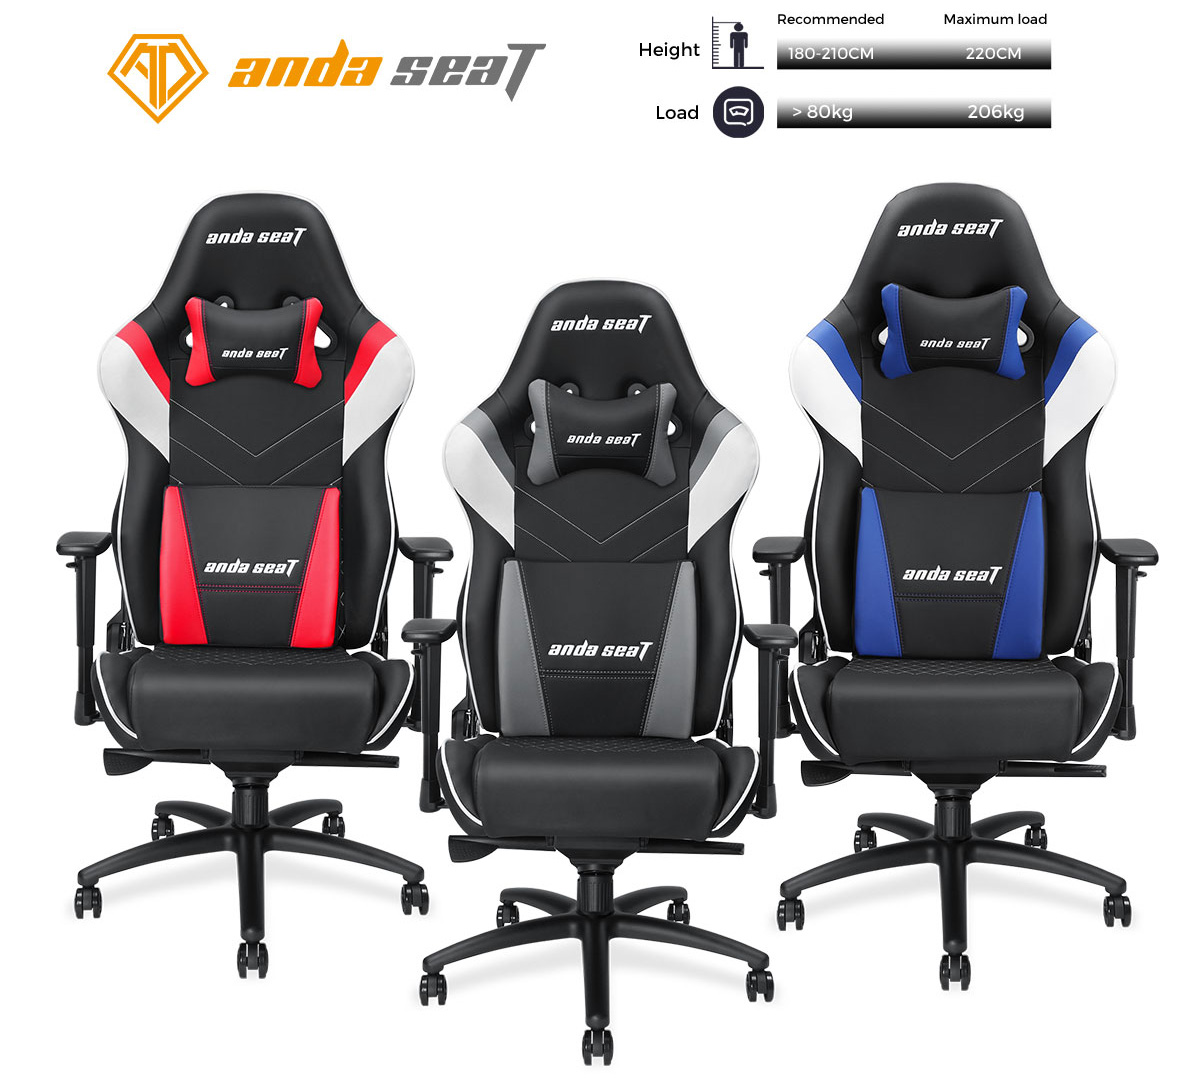 Superb Anda Seat Assassin King Series Big And Tall Gaming Chair High Back Desk And Office Chair 400Lb With Lumbar Support And Headrest Black White Grey Ncnpc Chair Design For Home Ncnpcorg